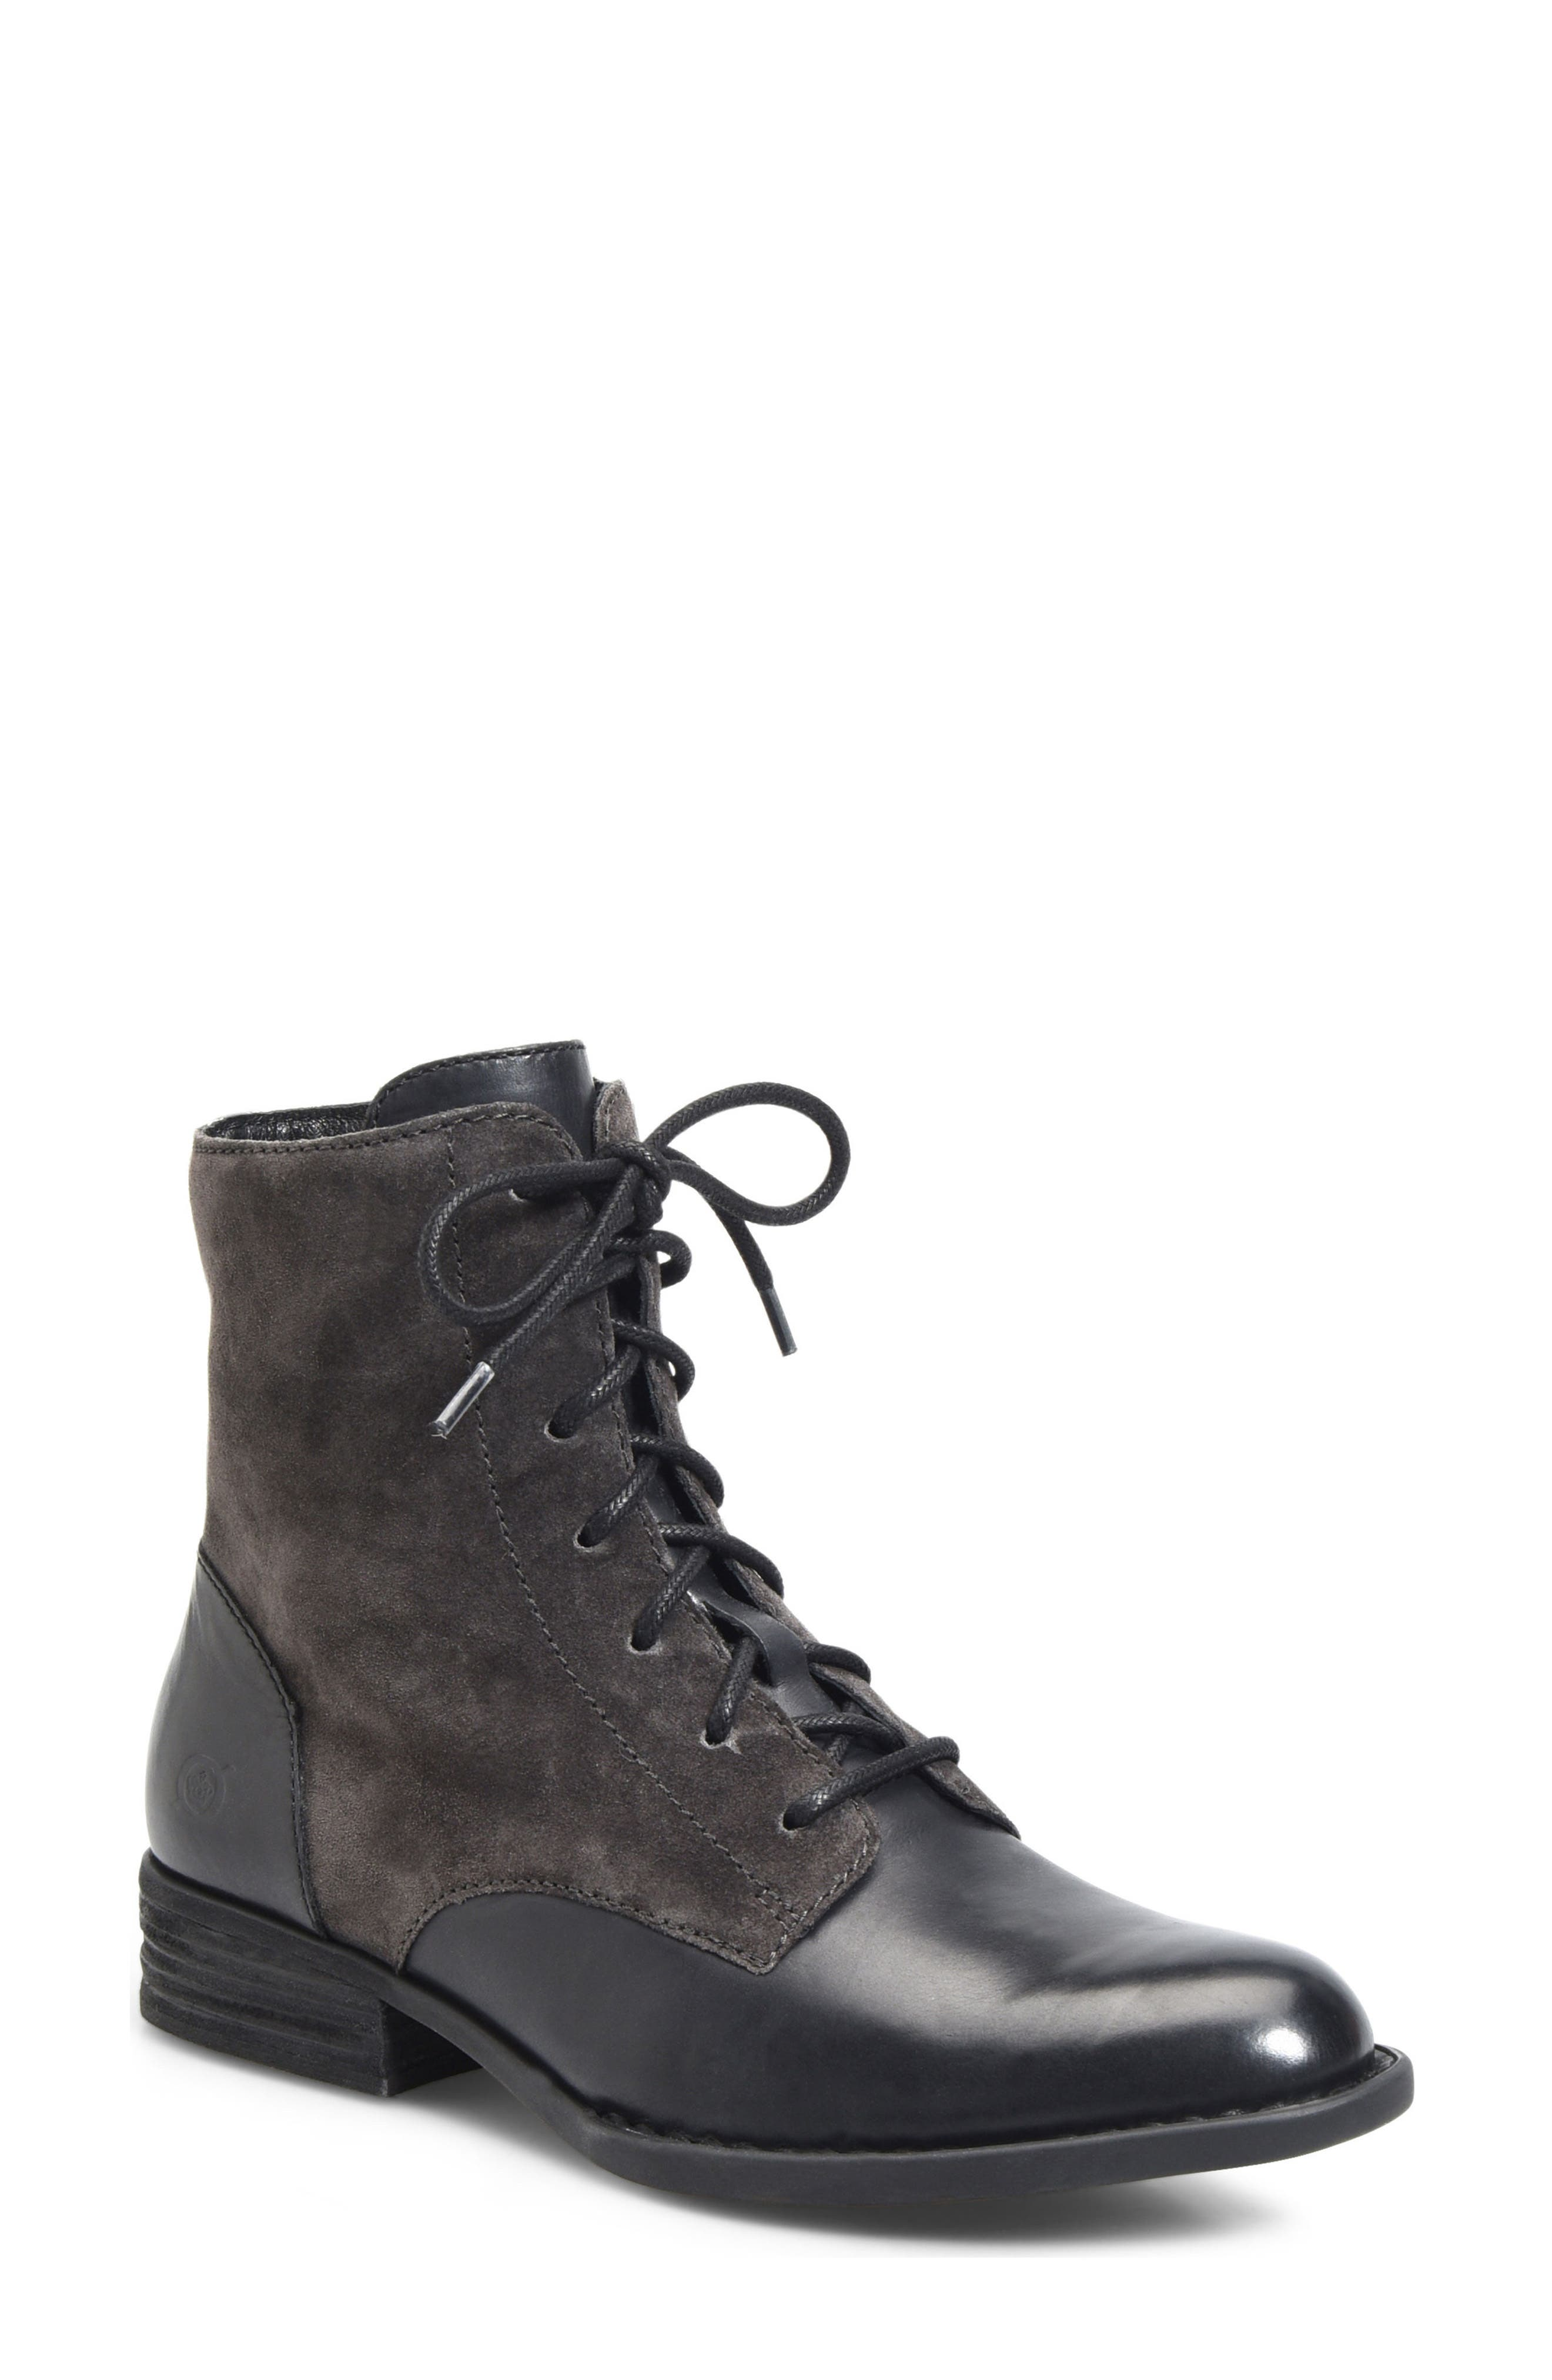 Alternate Image 1 Selected - Børn Clements Lace-Up Boot (Women)